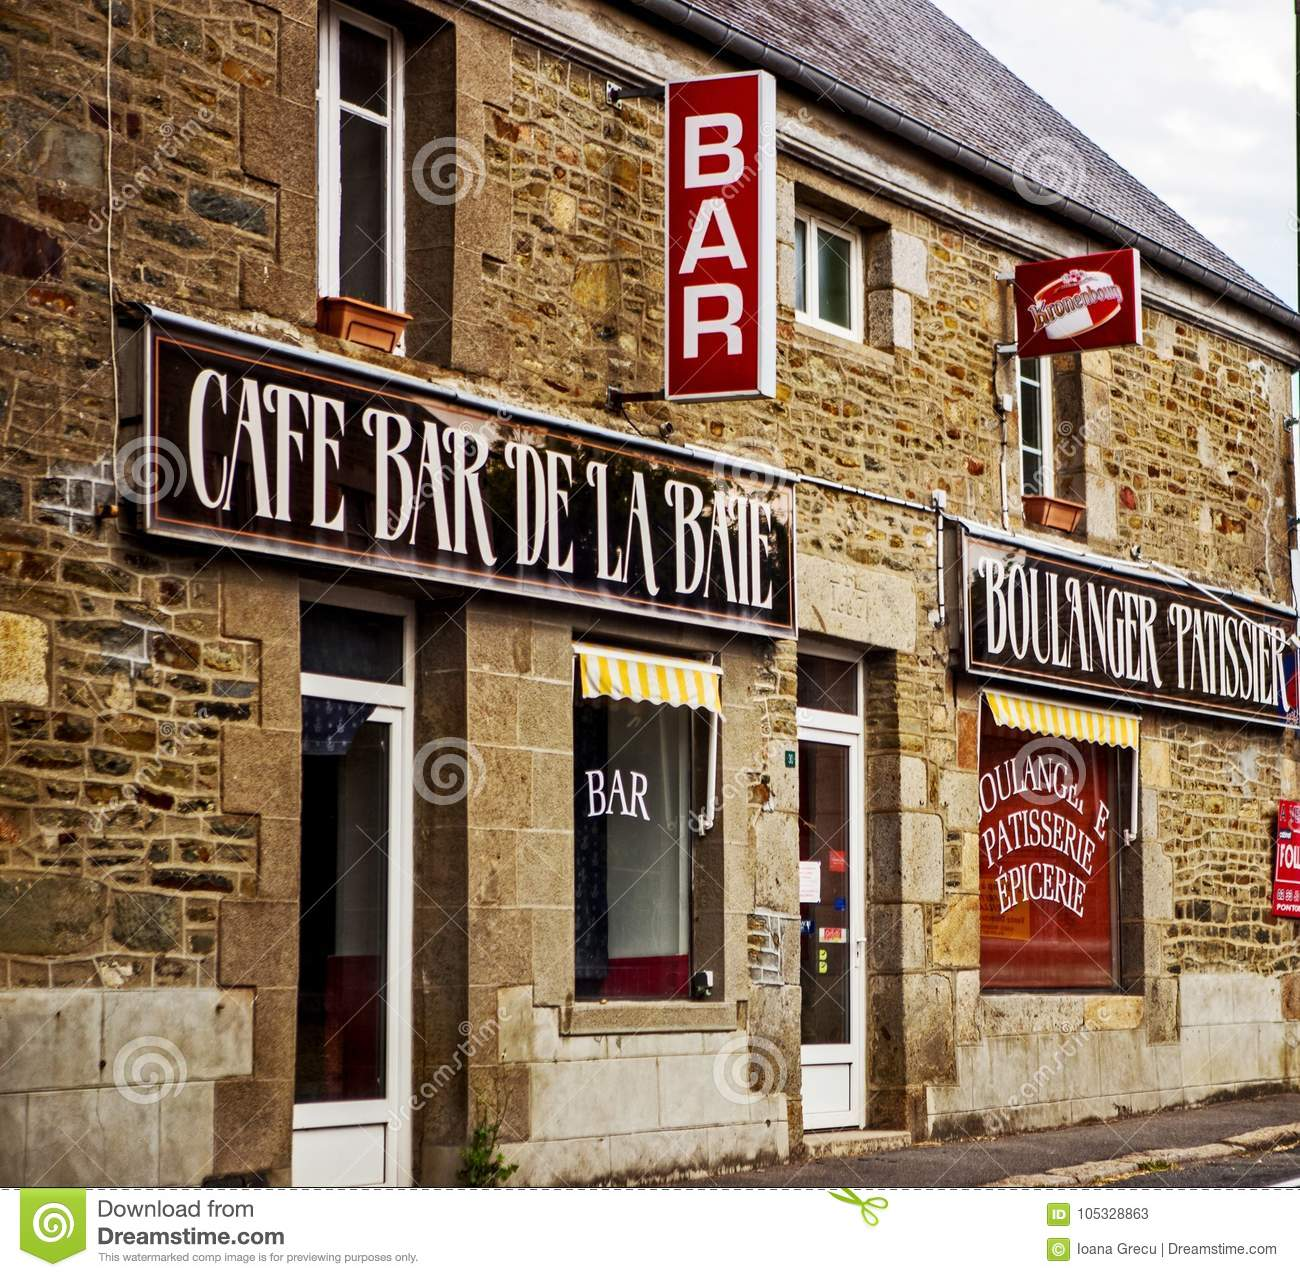 Cafe bar in Cherbourg, France